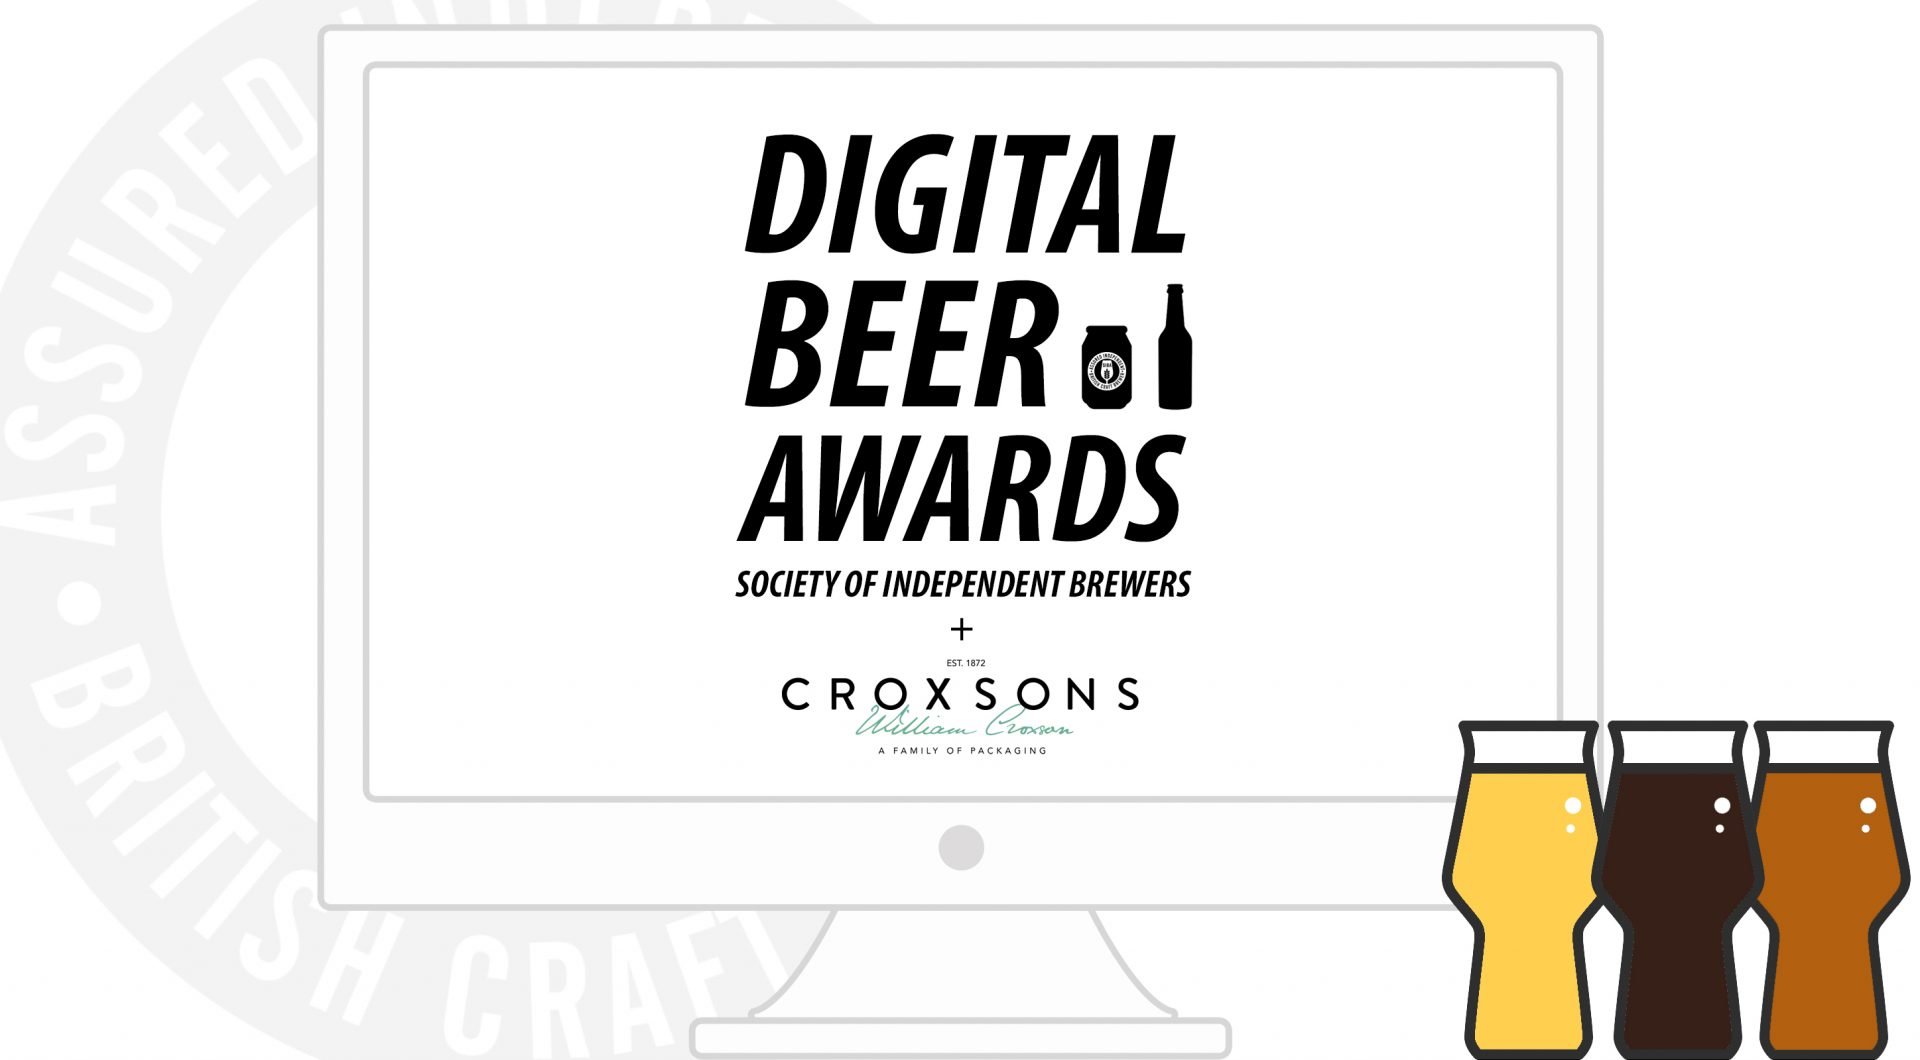 SIBA-Digital-Beer-Awards-SIBA+Croxsons HEADER